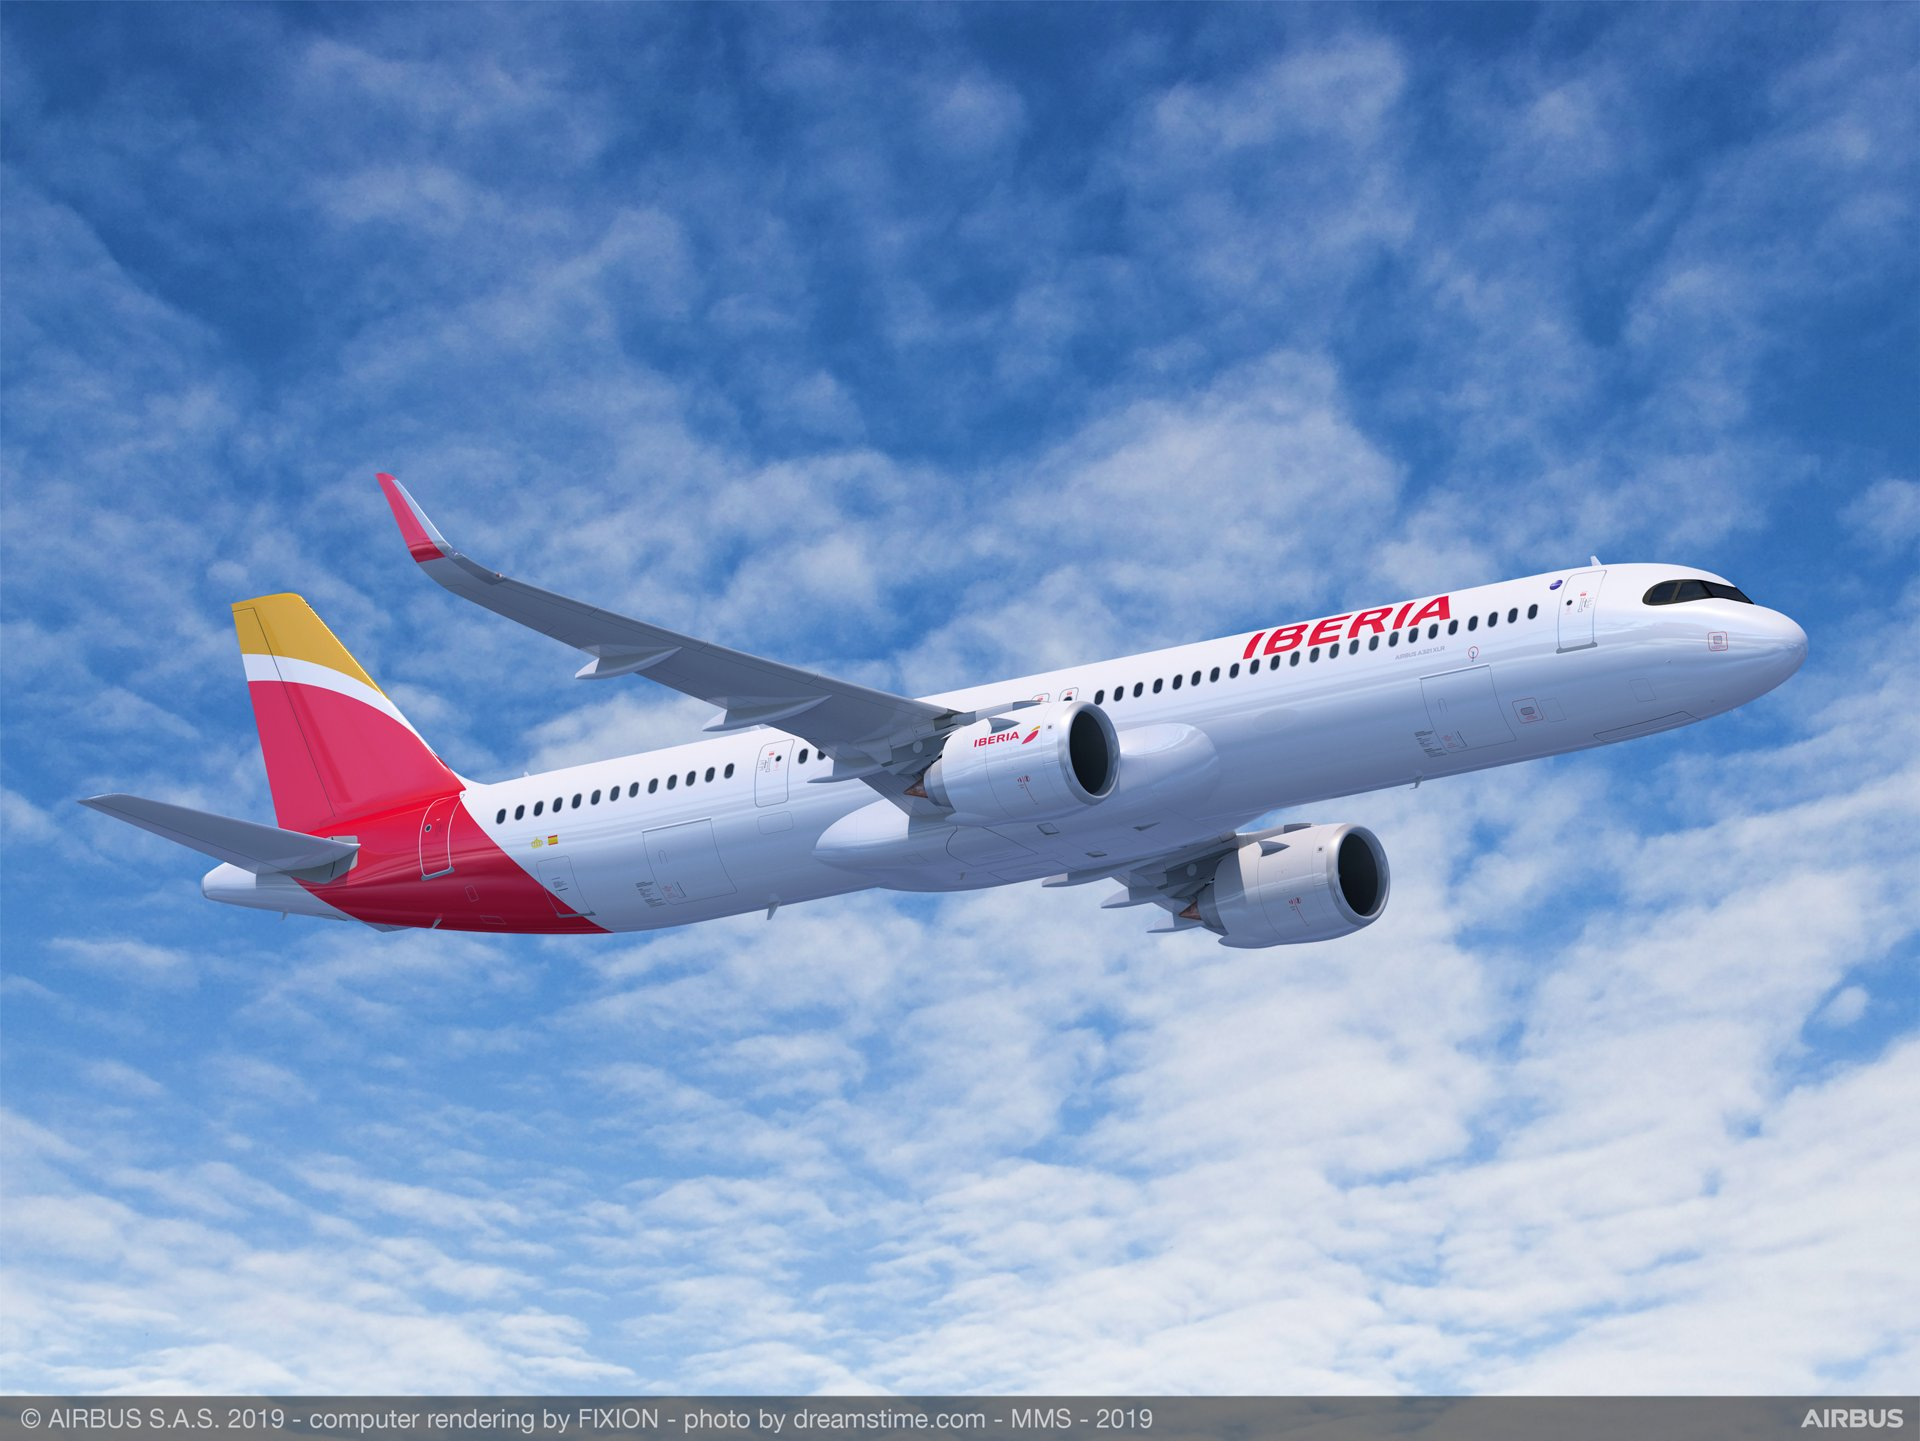 Of the 14 highly efficient A321XLR jetliners ordered by International Airlines Group (IAG), a total of eight are destined for Spanish airline Iberia